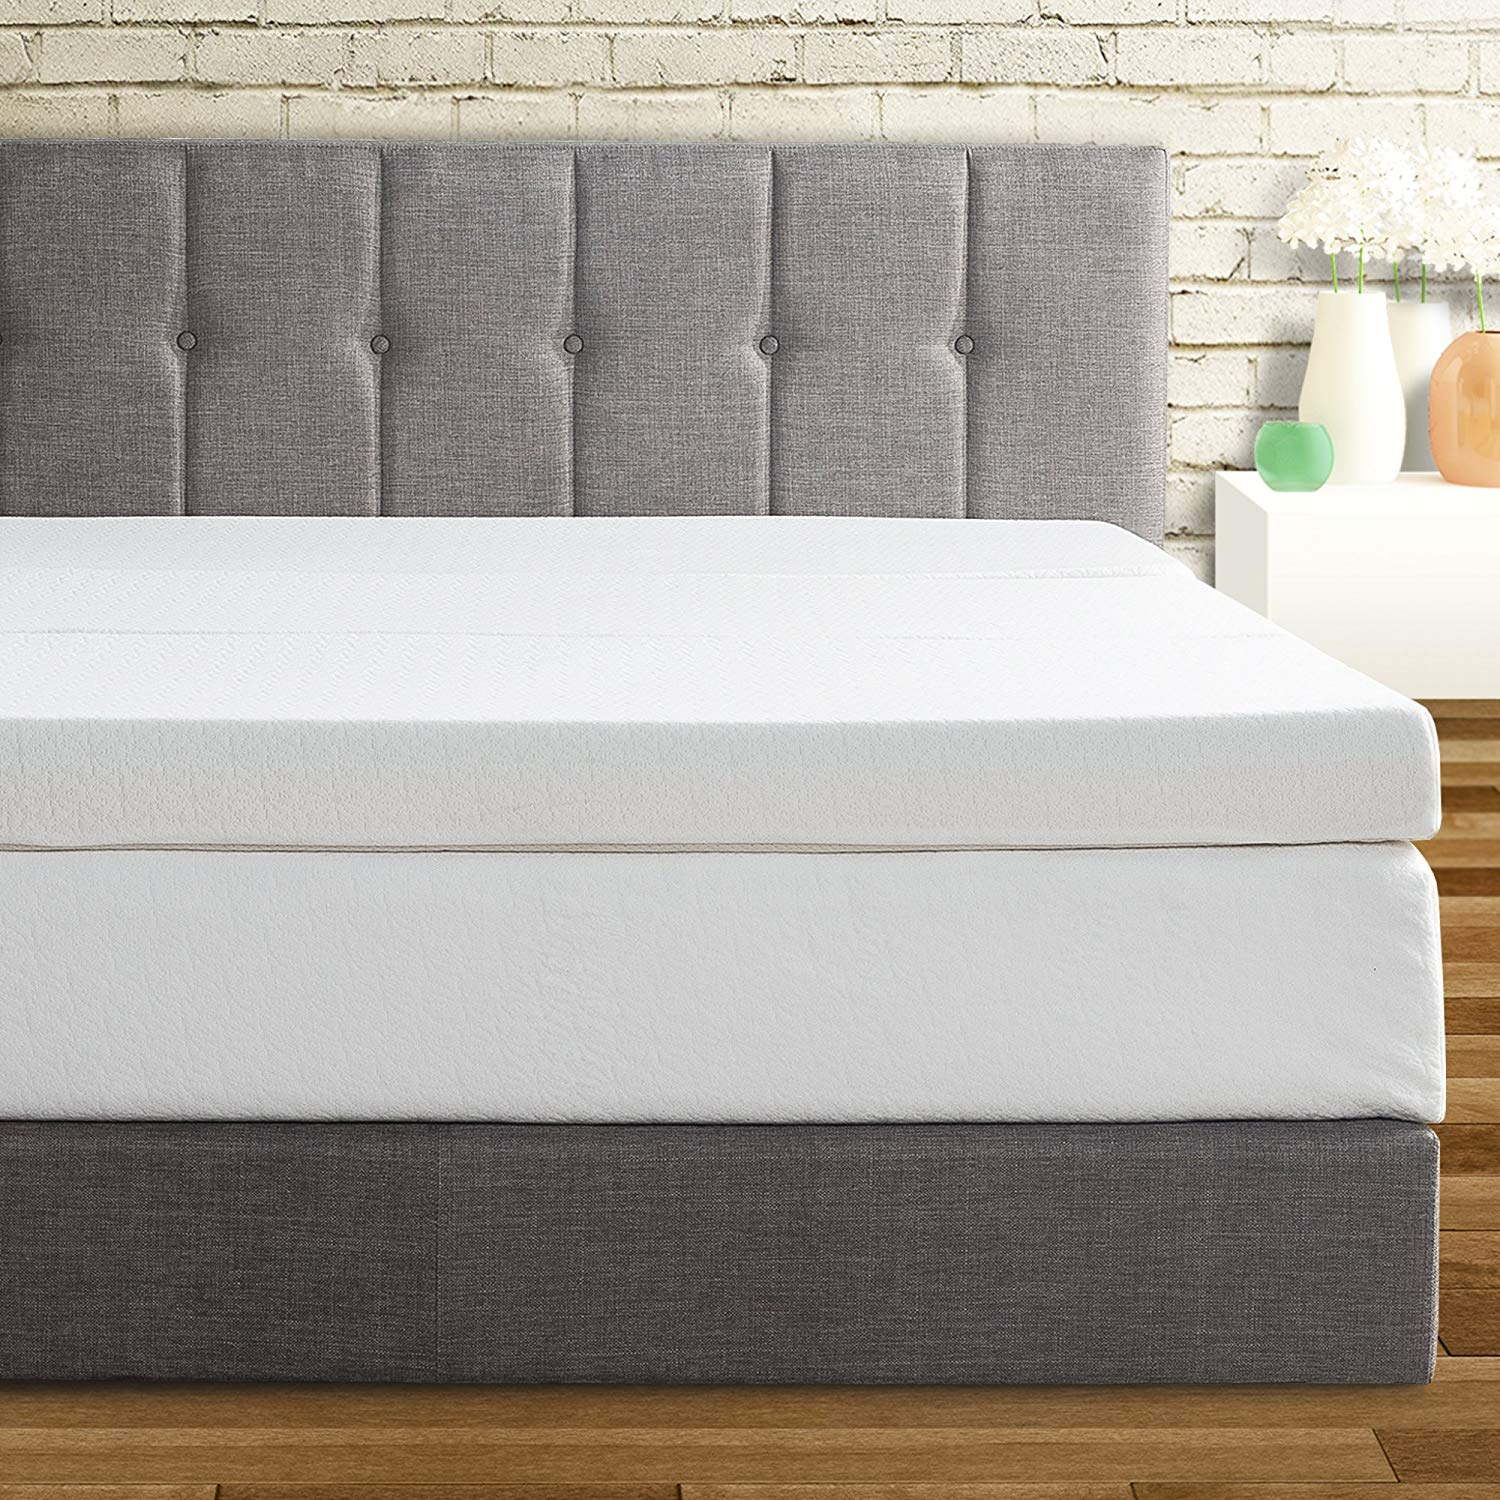 Best Foam Matress The Best Memory Foam Mattress Topper Brands And Buying Guide For